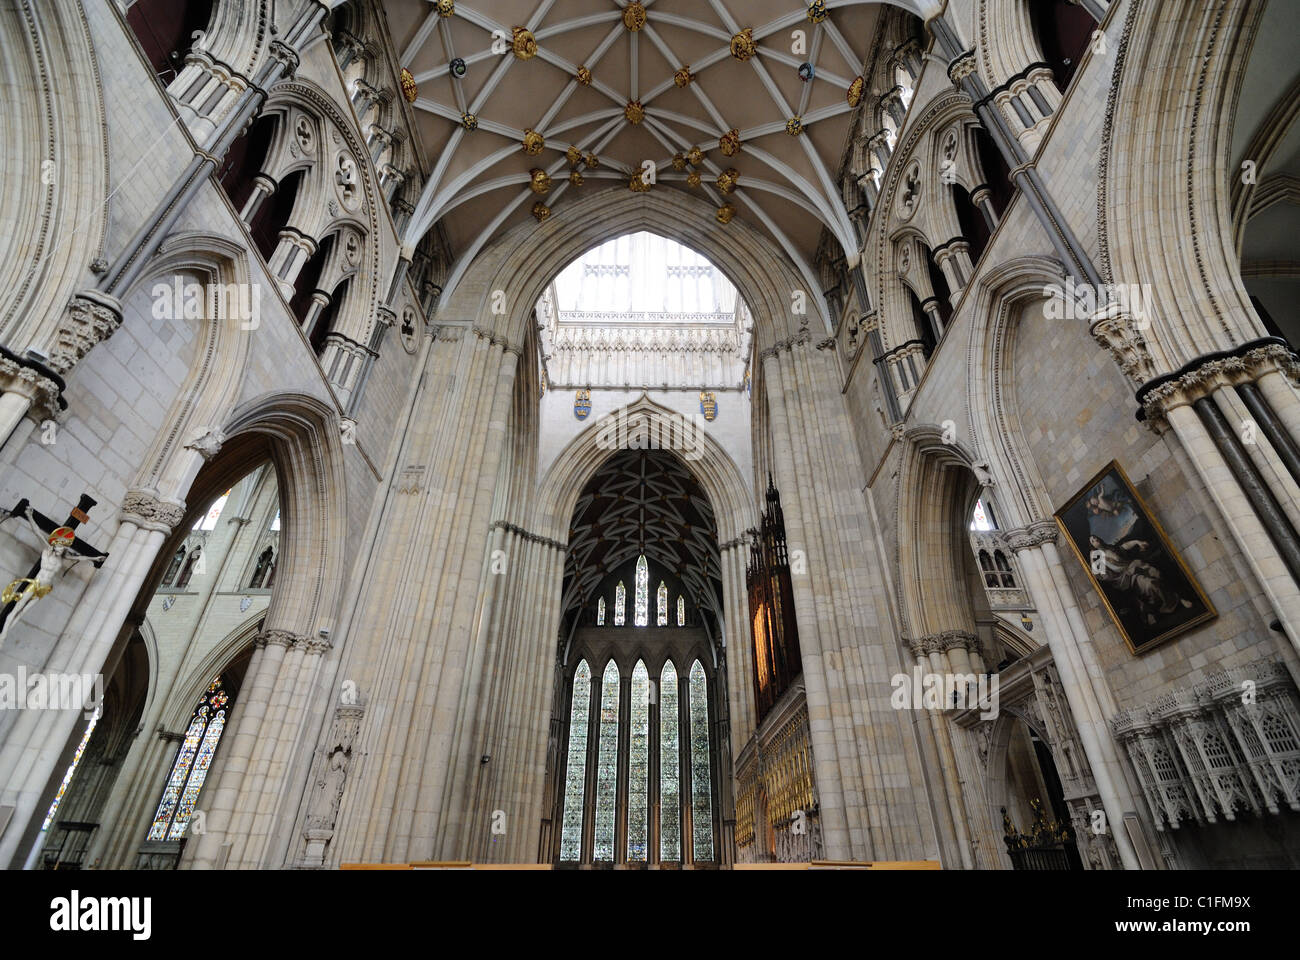 Interior of York Minster, a landmark cathedral in York, England. - Stock Image